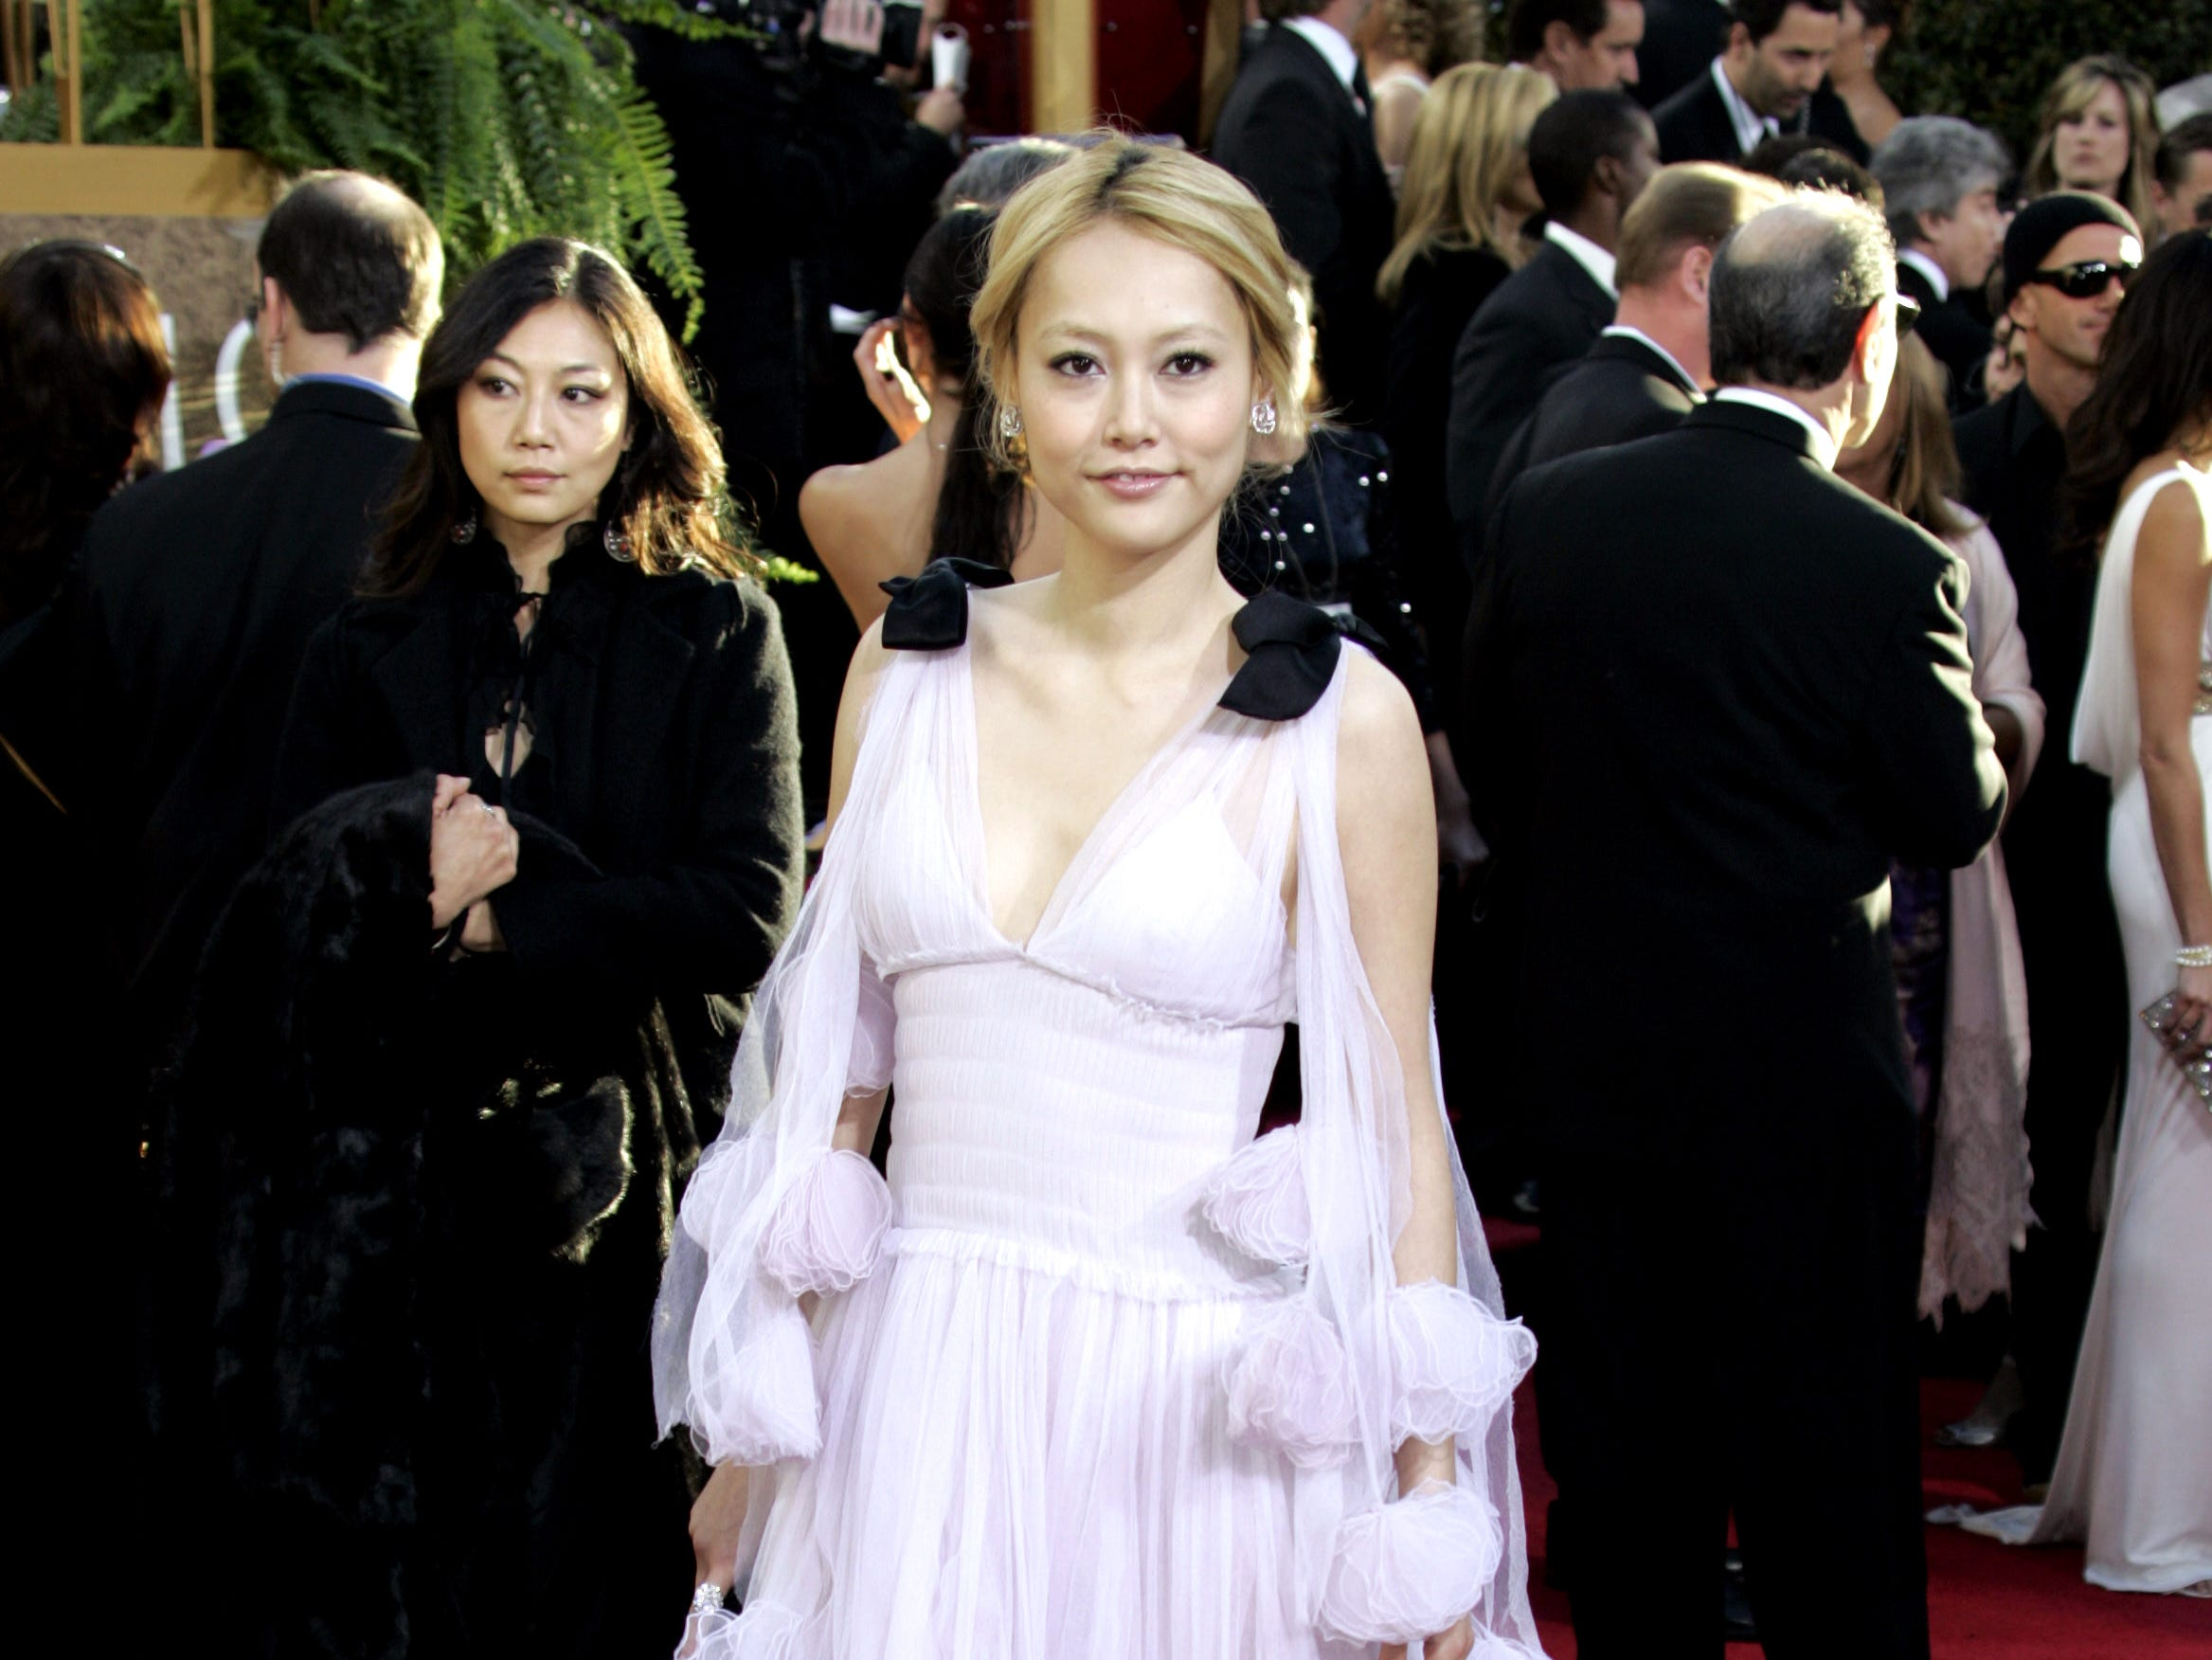 """Japanese actress Rinko Kikuchi from the movie """"Babel"""" arrives on the red carpet for the 64th Annual Golden Globe Awards 15 January 2007 in Beverly Hills, CA.  Rinko Kikuchi was nominated for Best Performance by an Actress in a Supporting Role in a Motion Picture for her role in """"Babel.""""    AFP PHOTO / Hector MATA  (Photo credit should read HECTOR MATA/AFP/Getty Images) ORG XMIT: RLB90"""